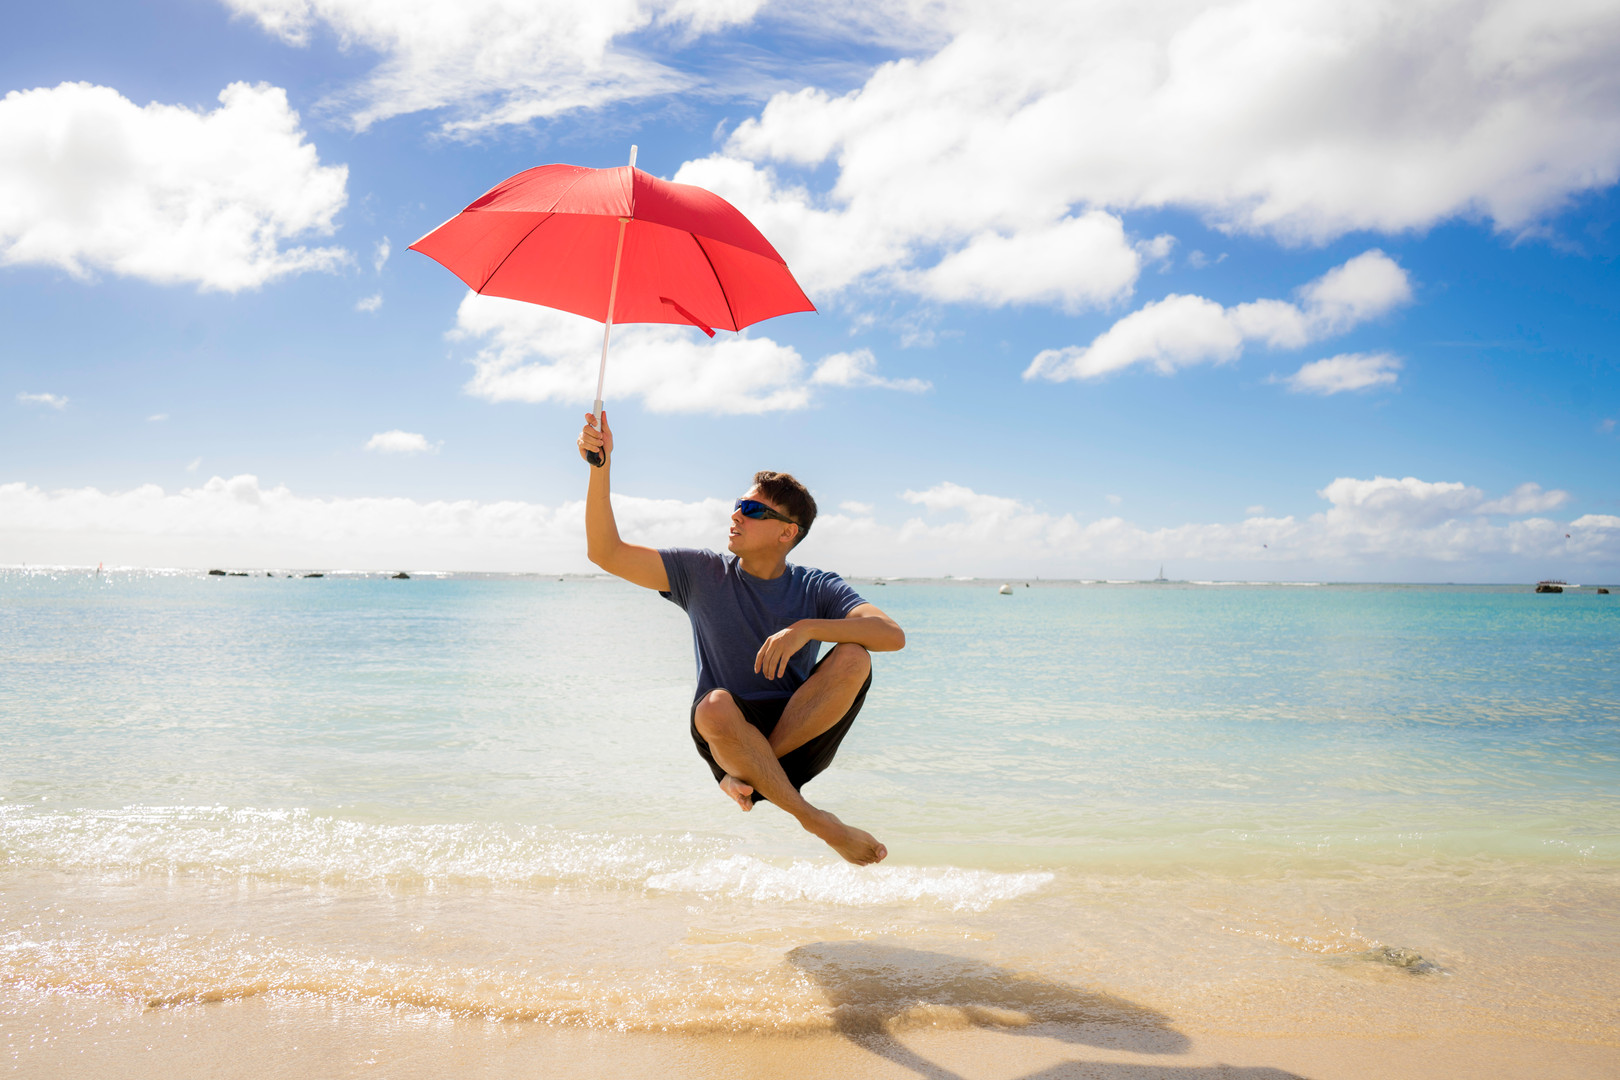 Dane ala moana beach levitation.jpg